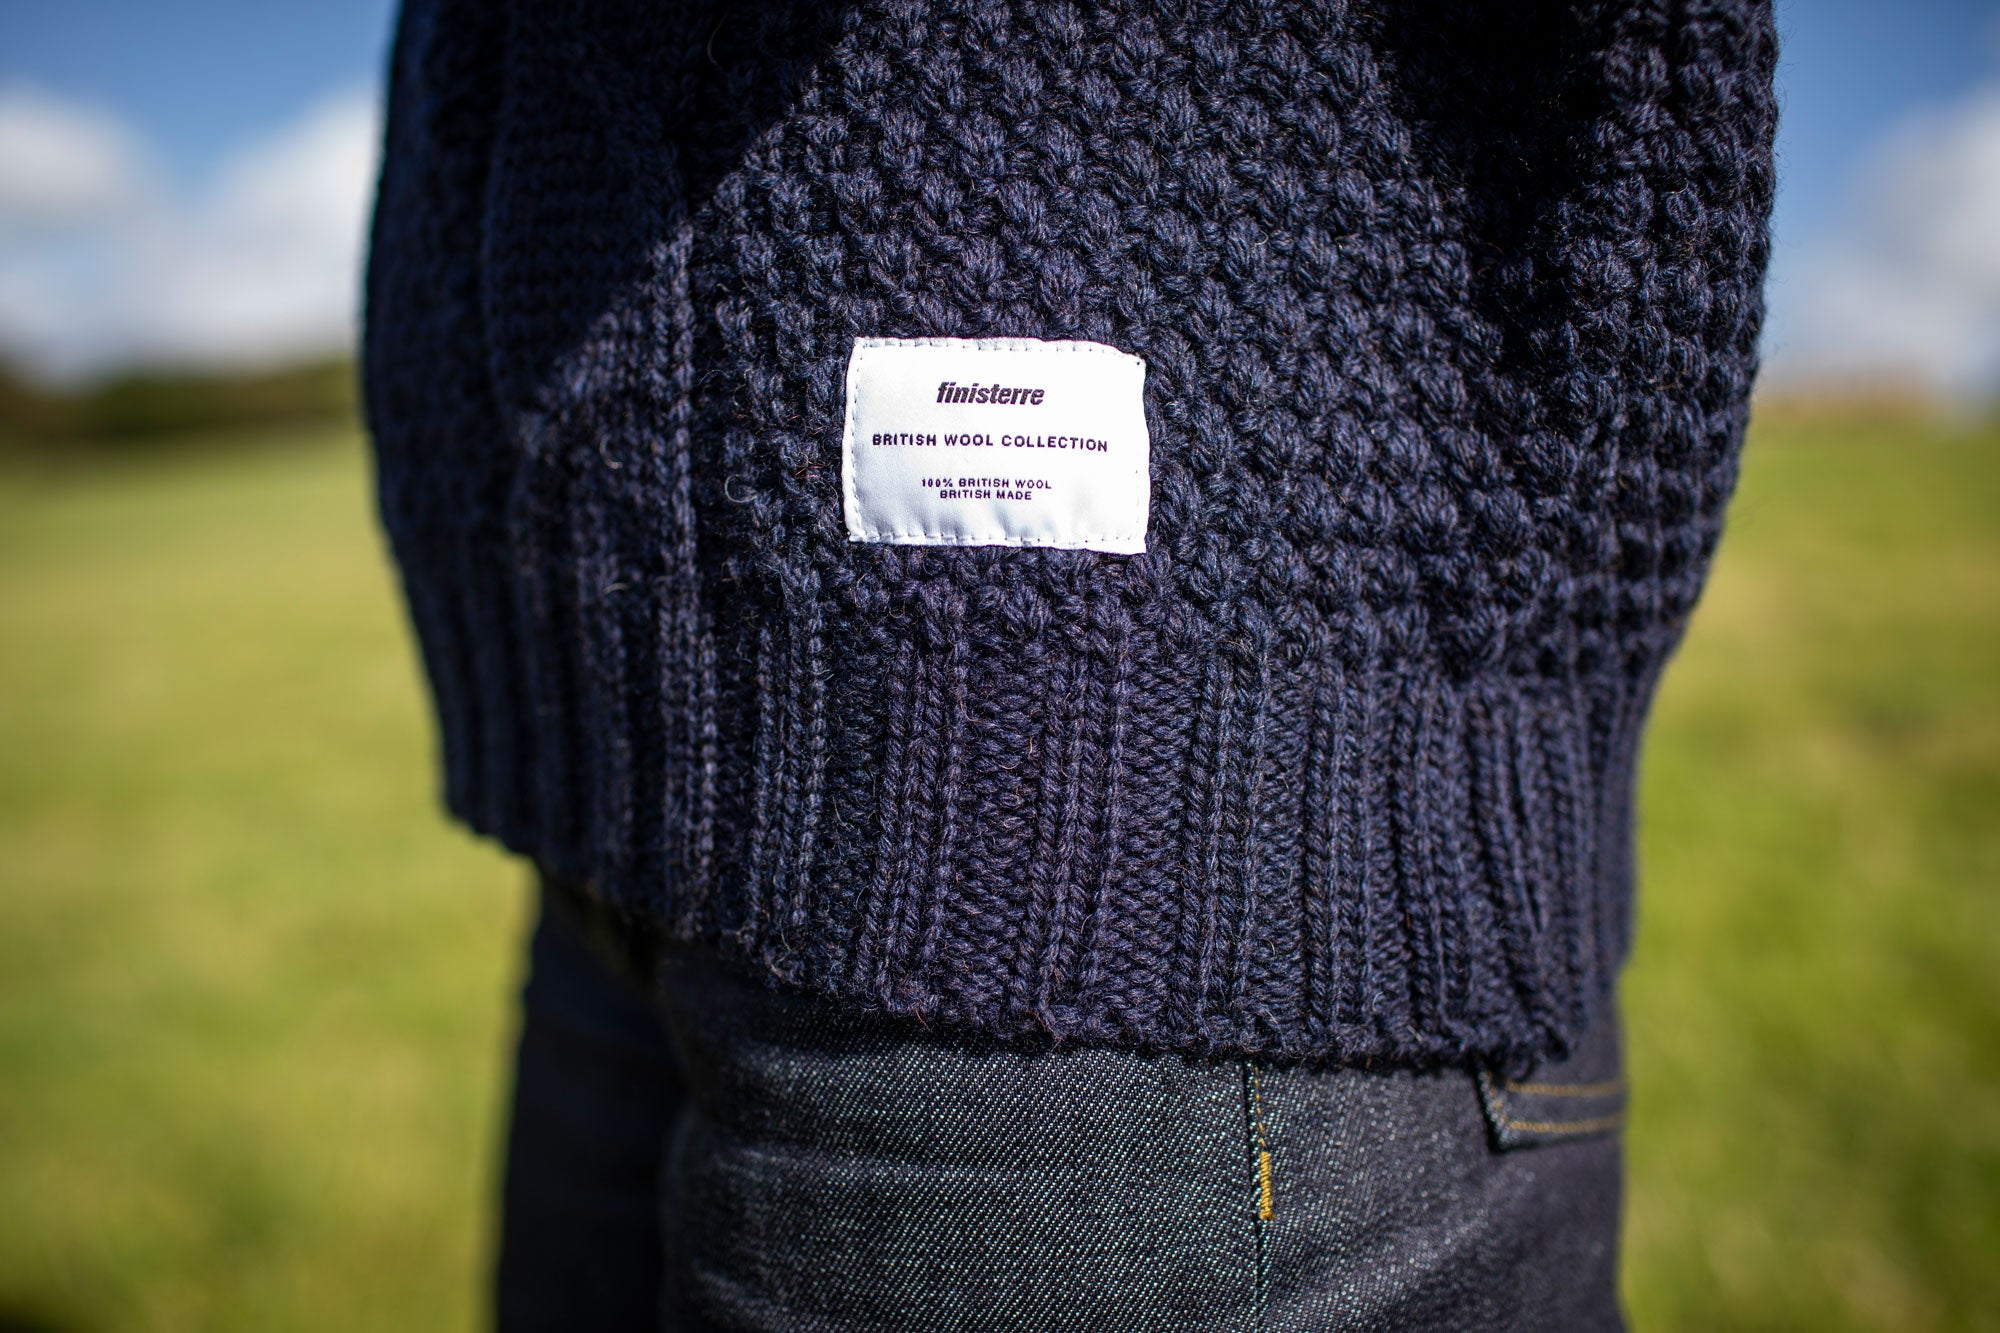 British Wool Collection Jumper Finisterre Grown spun and knitted in Britain